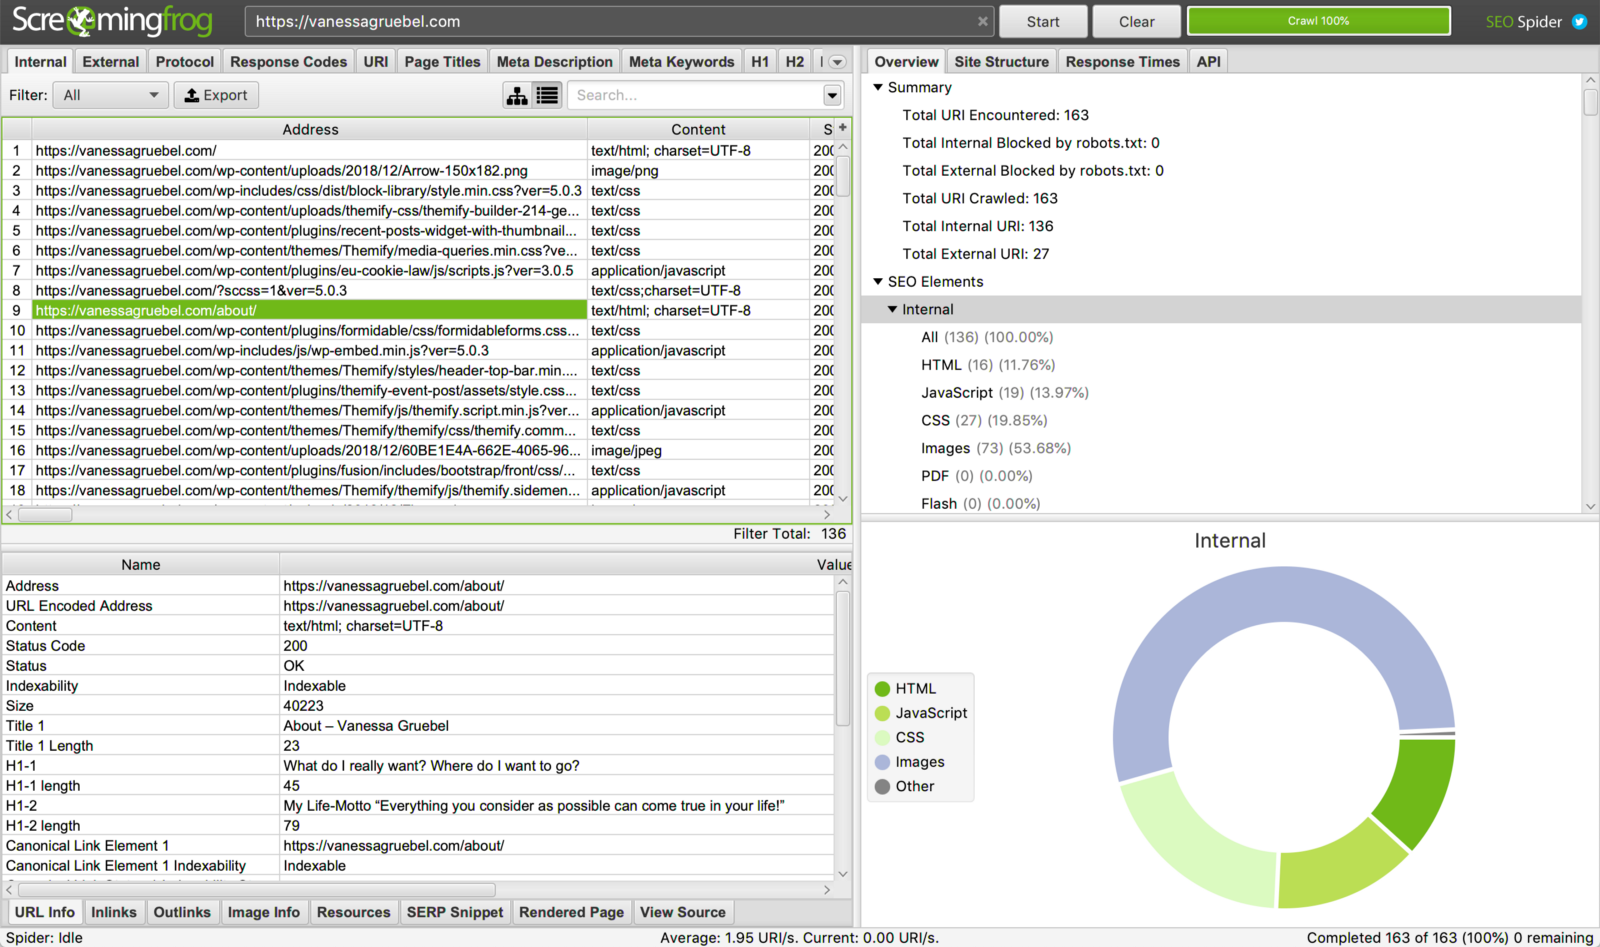 ScreamingFrog: SEO Spider Crawl Overview